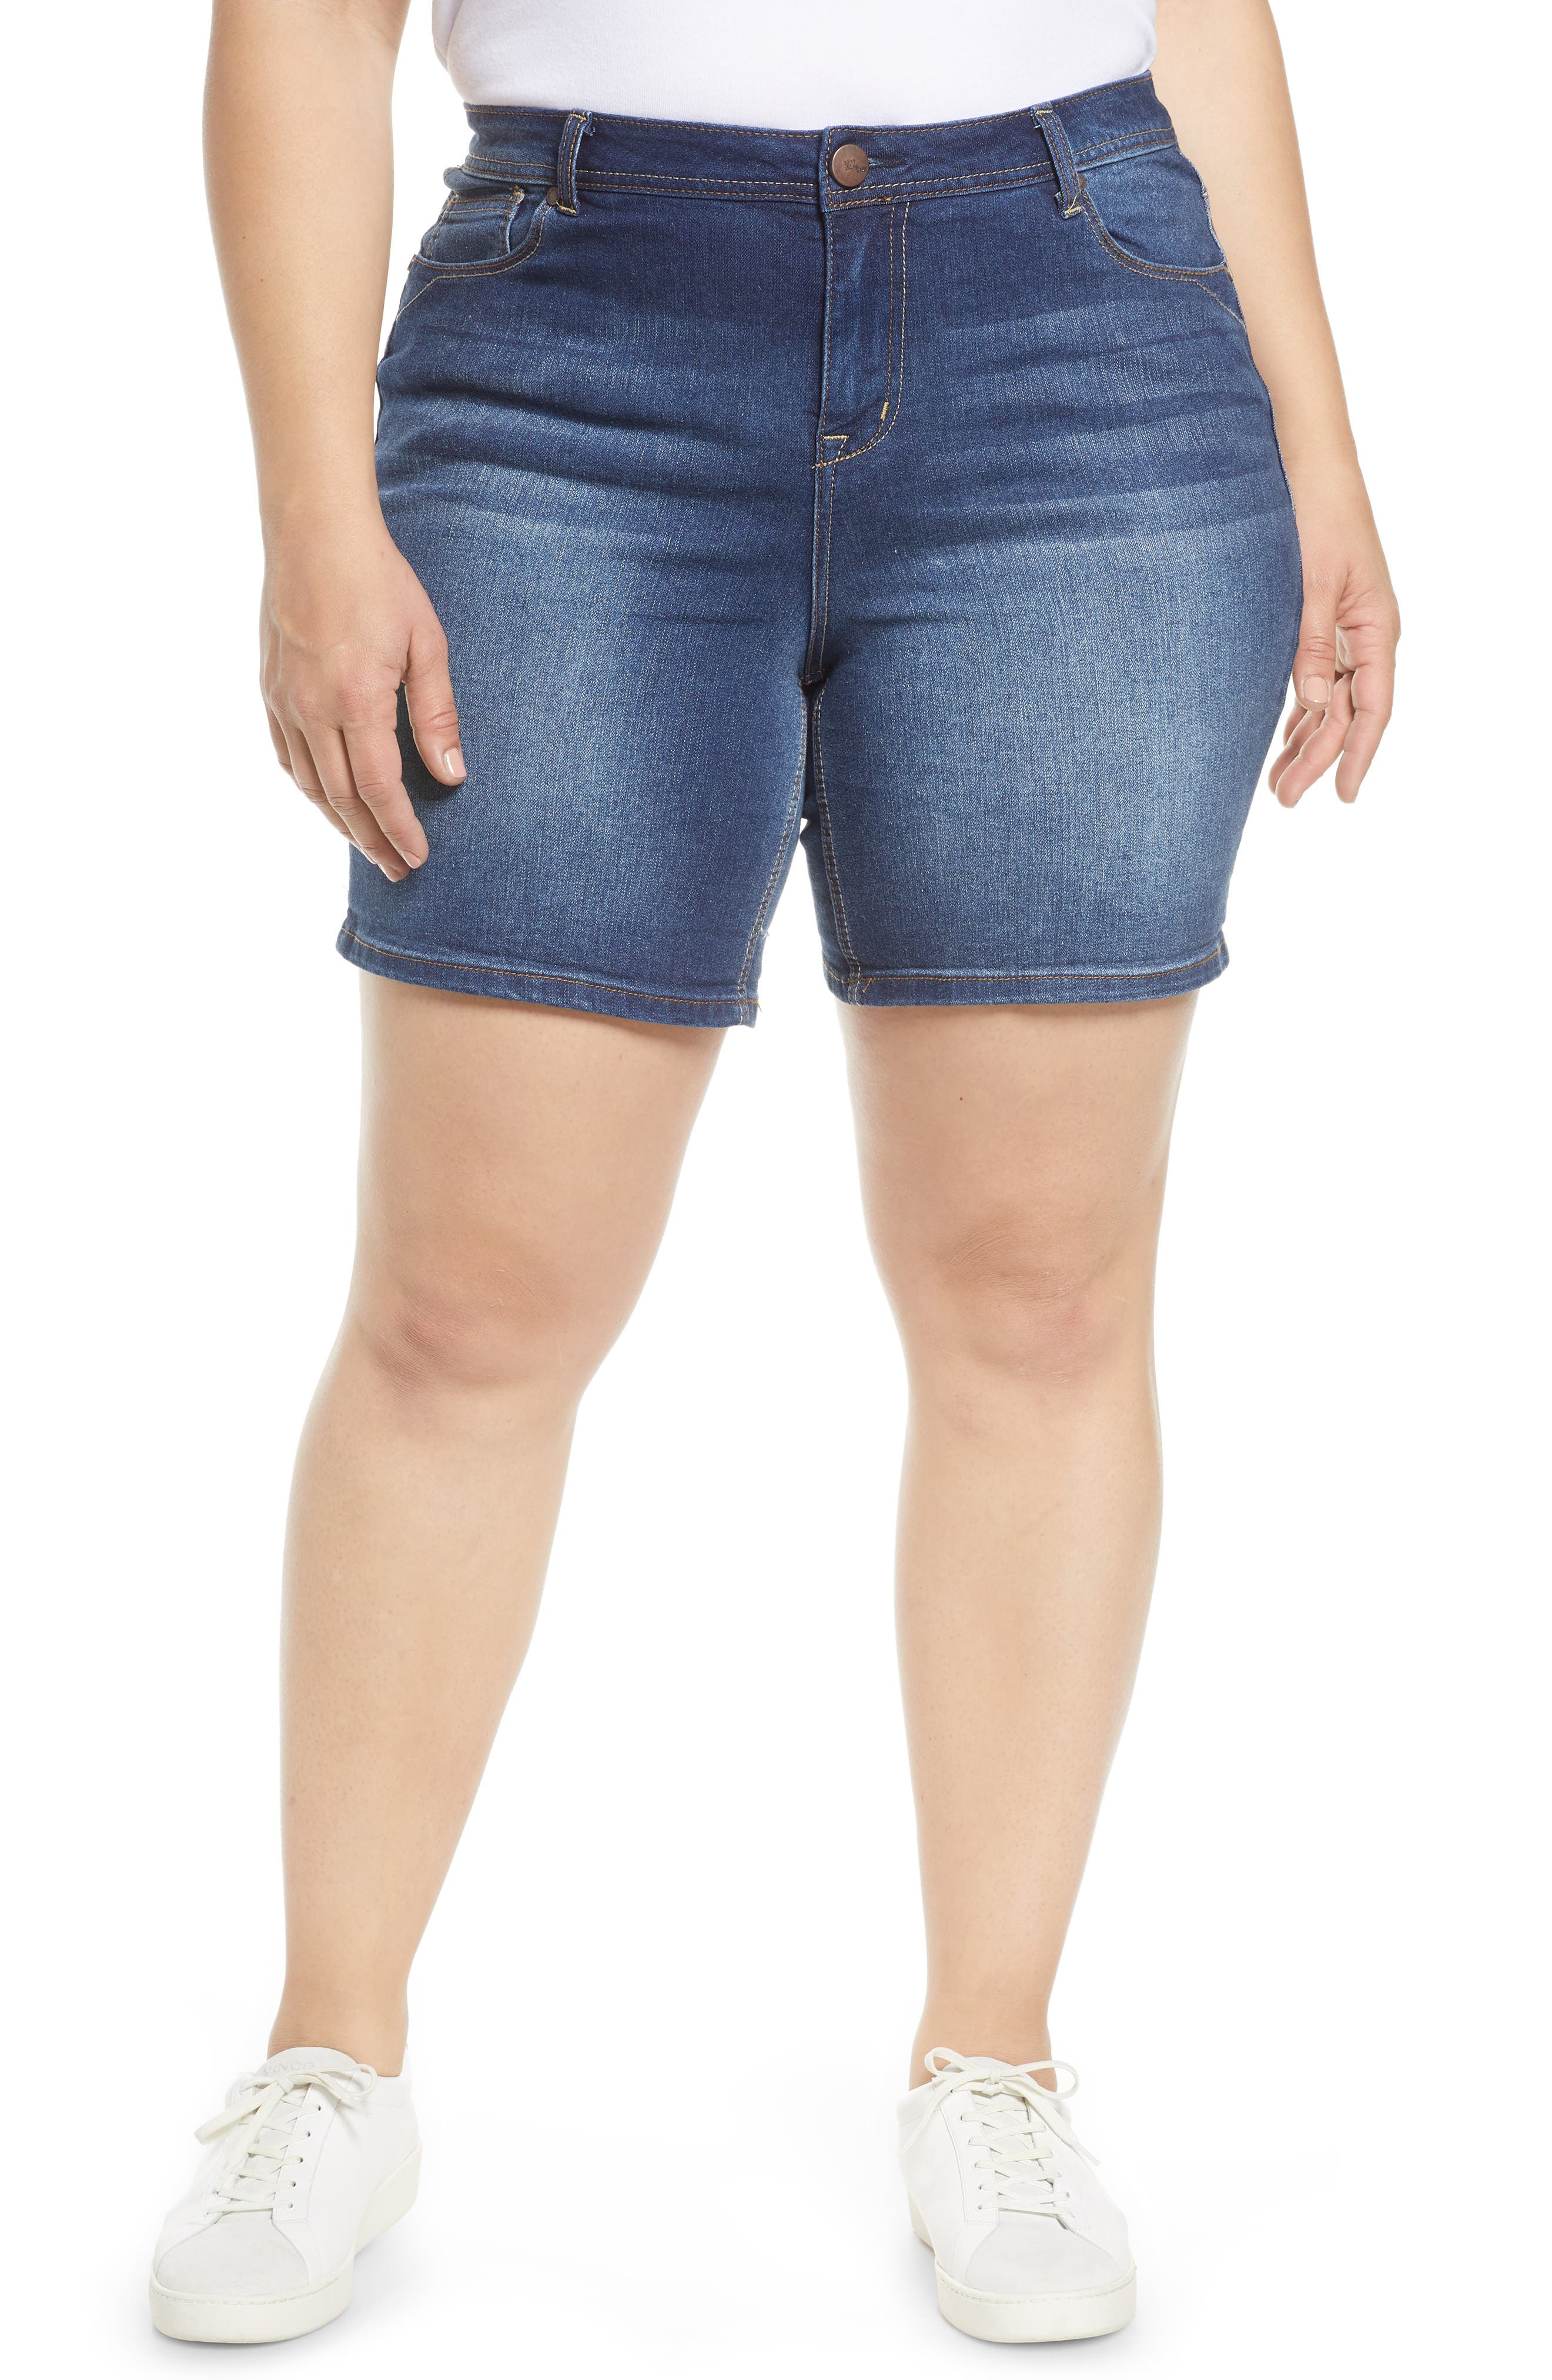 These soft and stretchy denim shorts come in a longer length for a bit more coverage. Style Name:1822 Denim Shorts (Ziggy) (Plus Size). Style Number: 5998902. Available in stores.